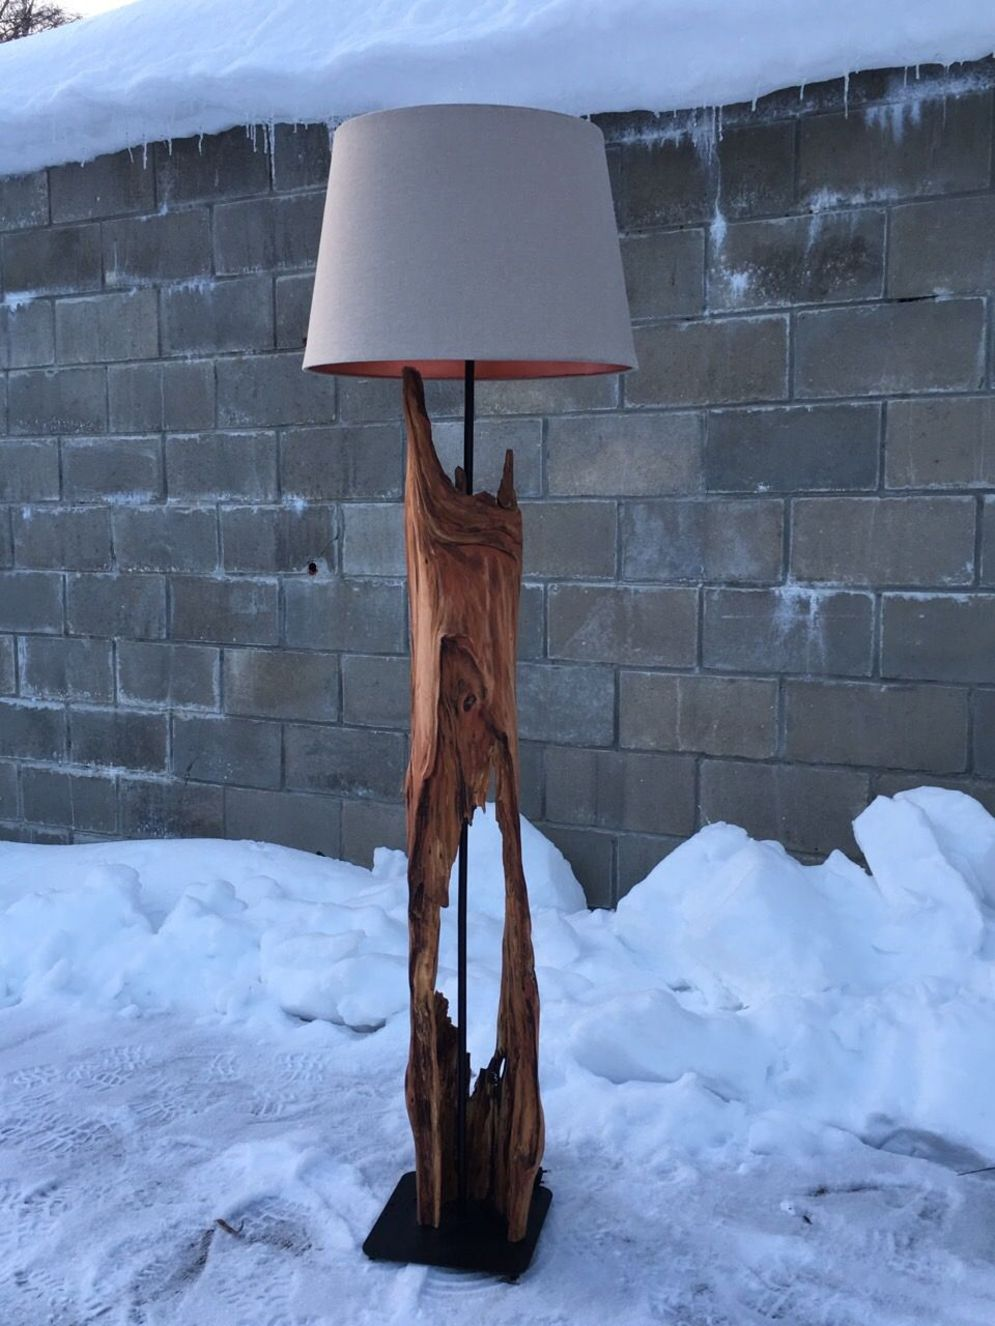 Awesome driftwood lamp stands giving authentic decoration in natural art style Image 12